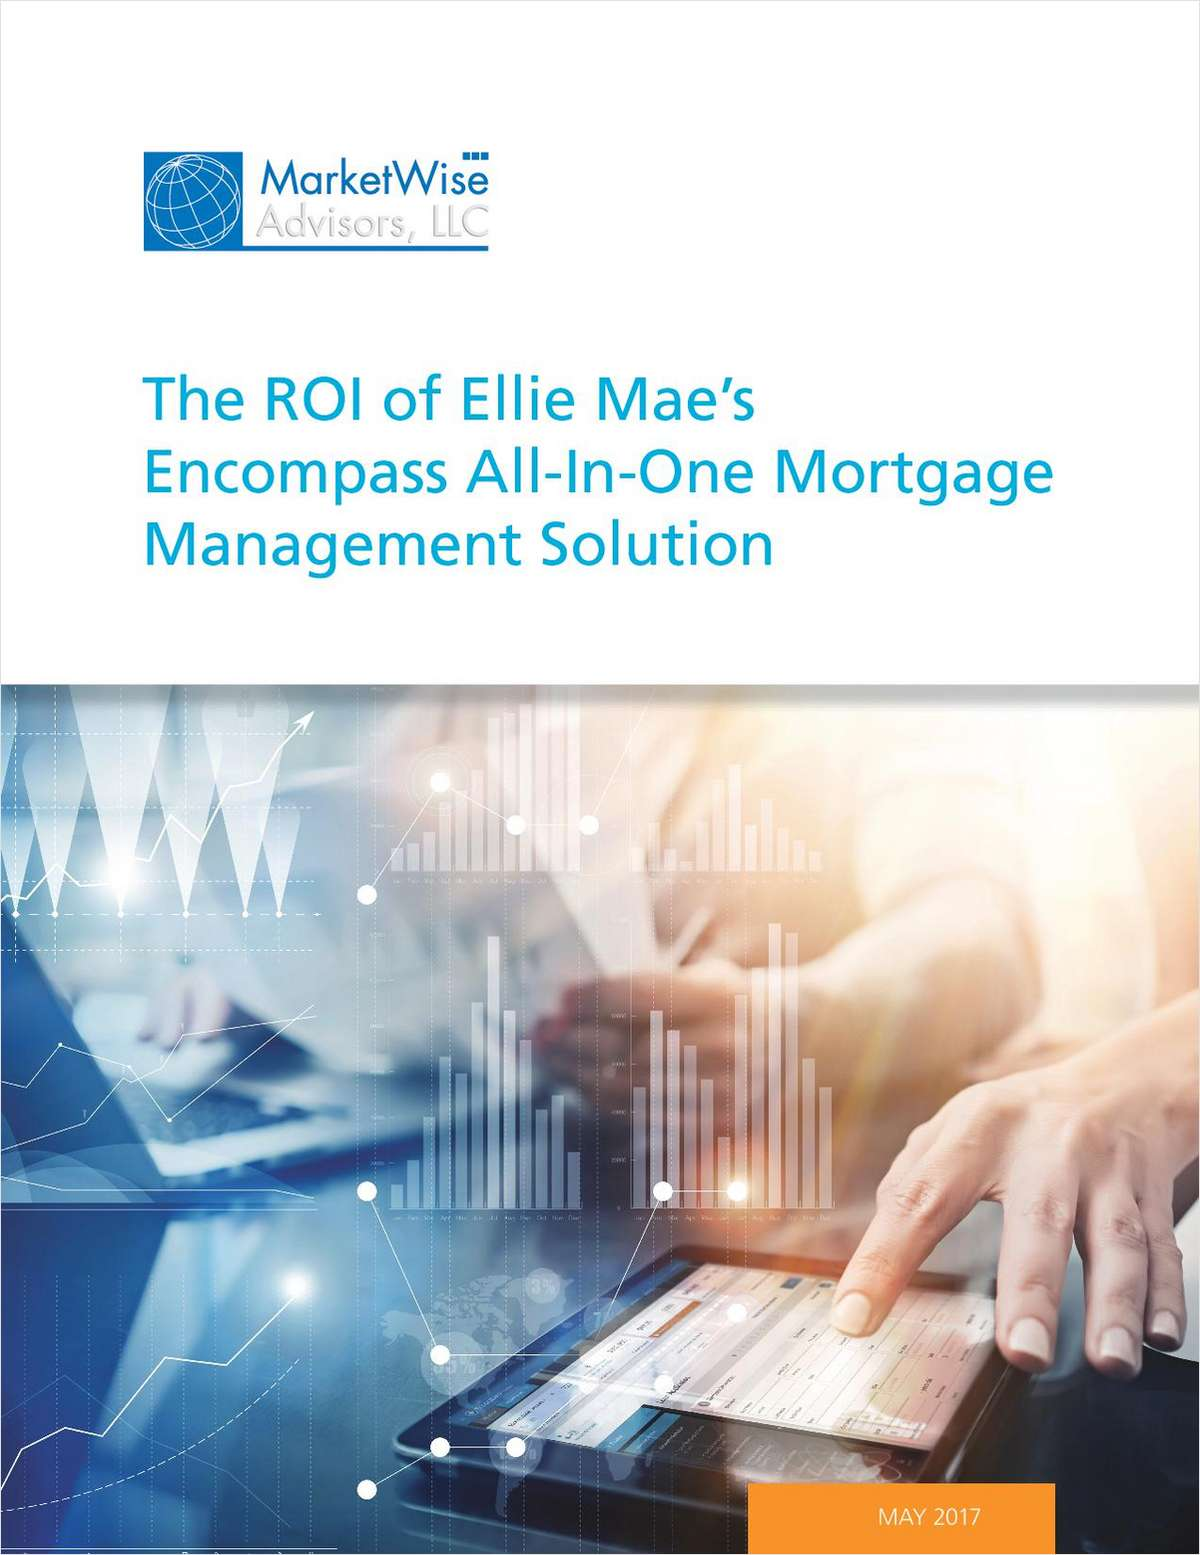 5 Steps to Incorporate ROI into Mortgage Lending